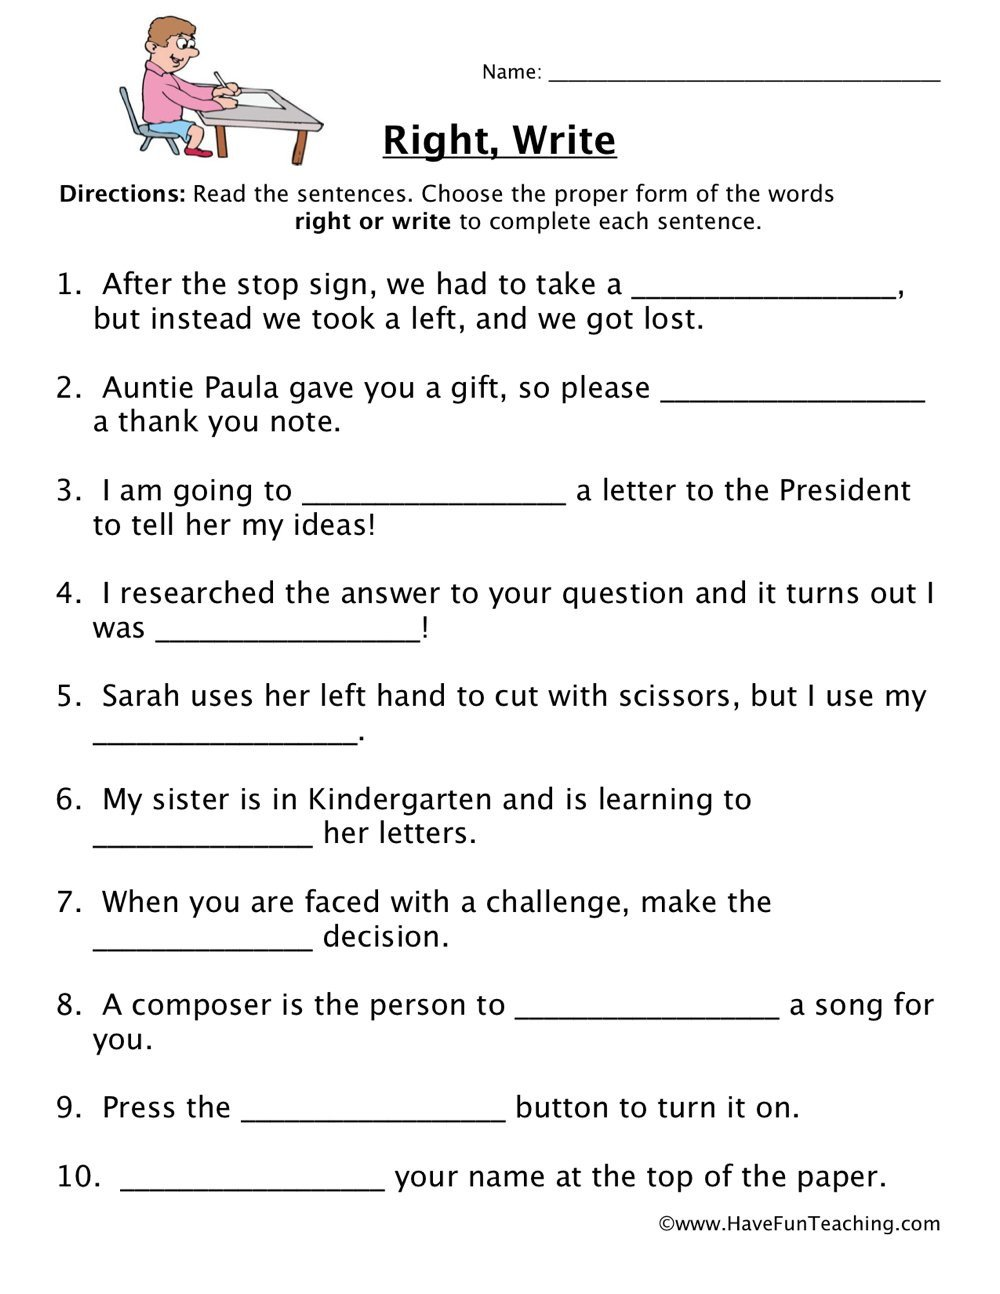 Homophones Worksheet 4th Grade Right Write Homophones Worksheet